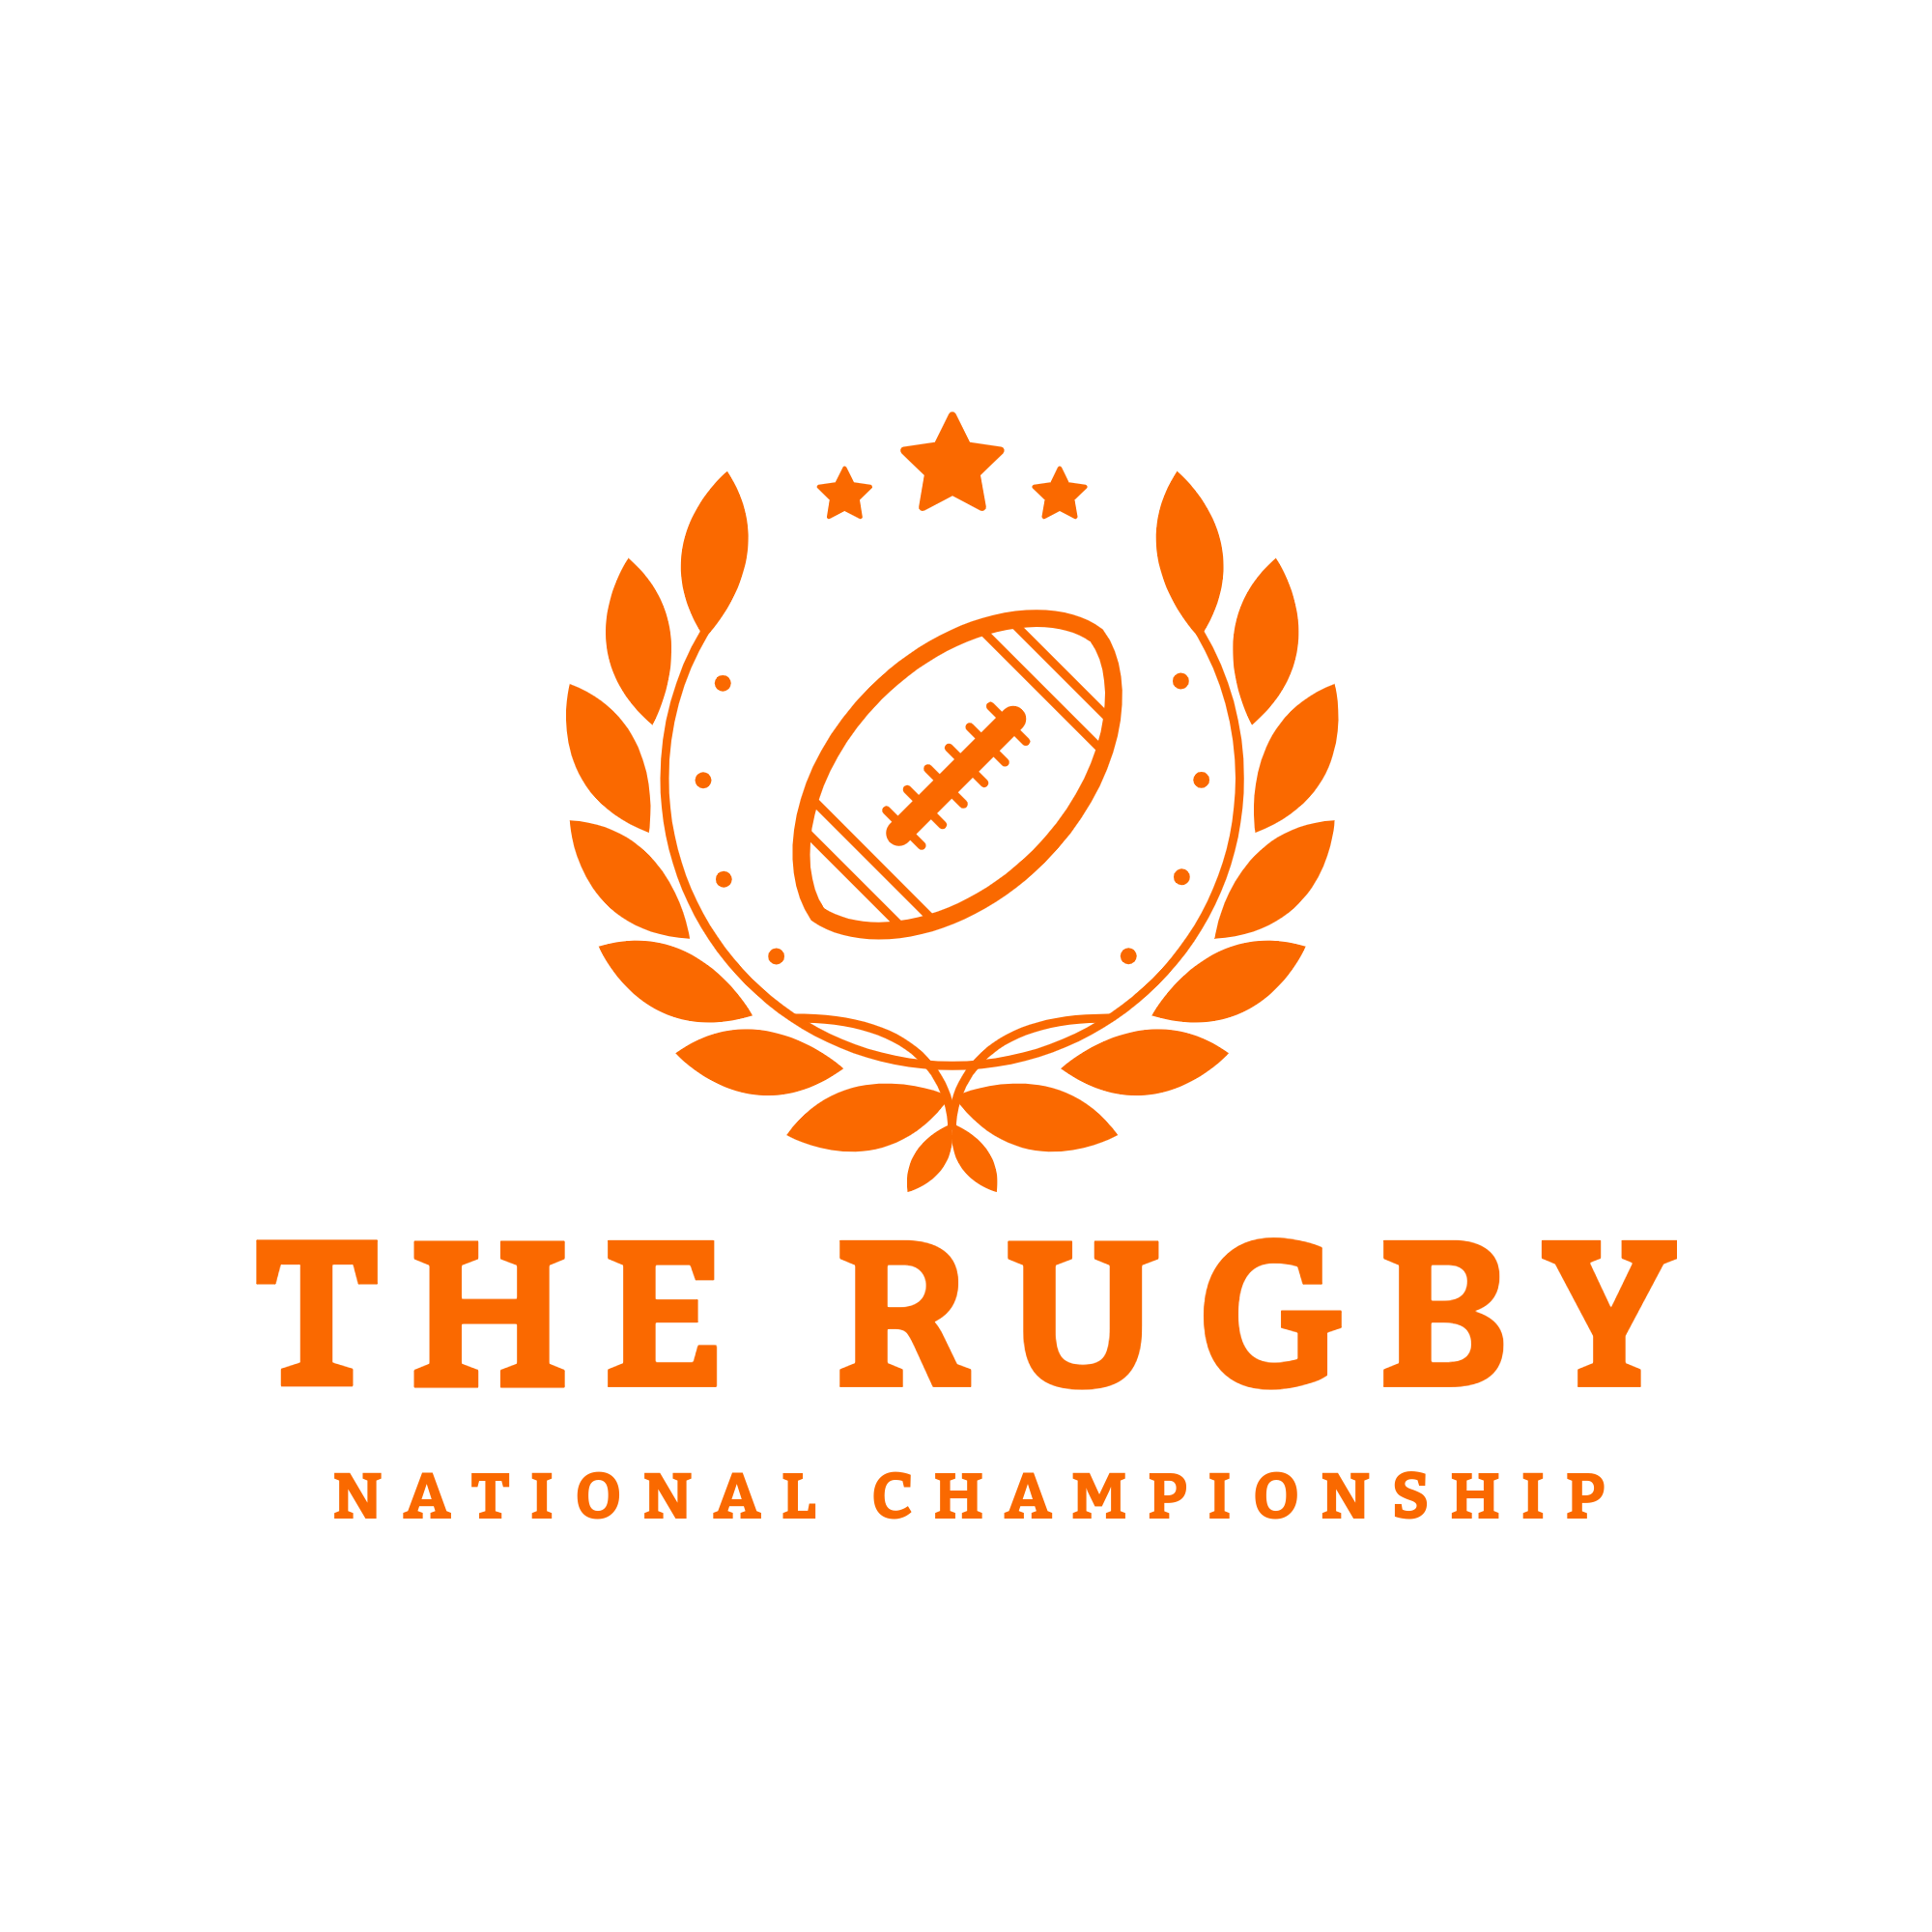 The Rugby National Championship Logaster logo